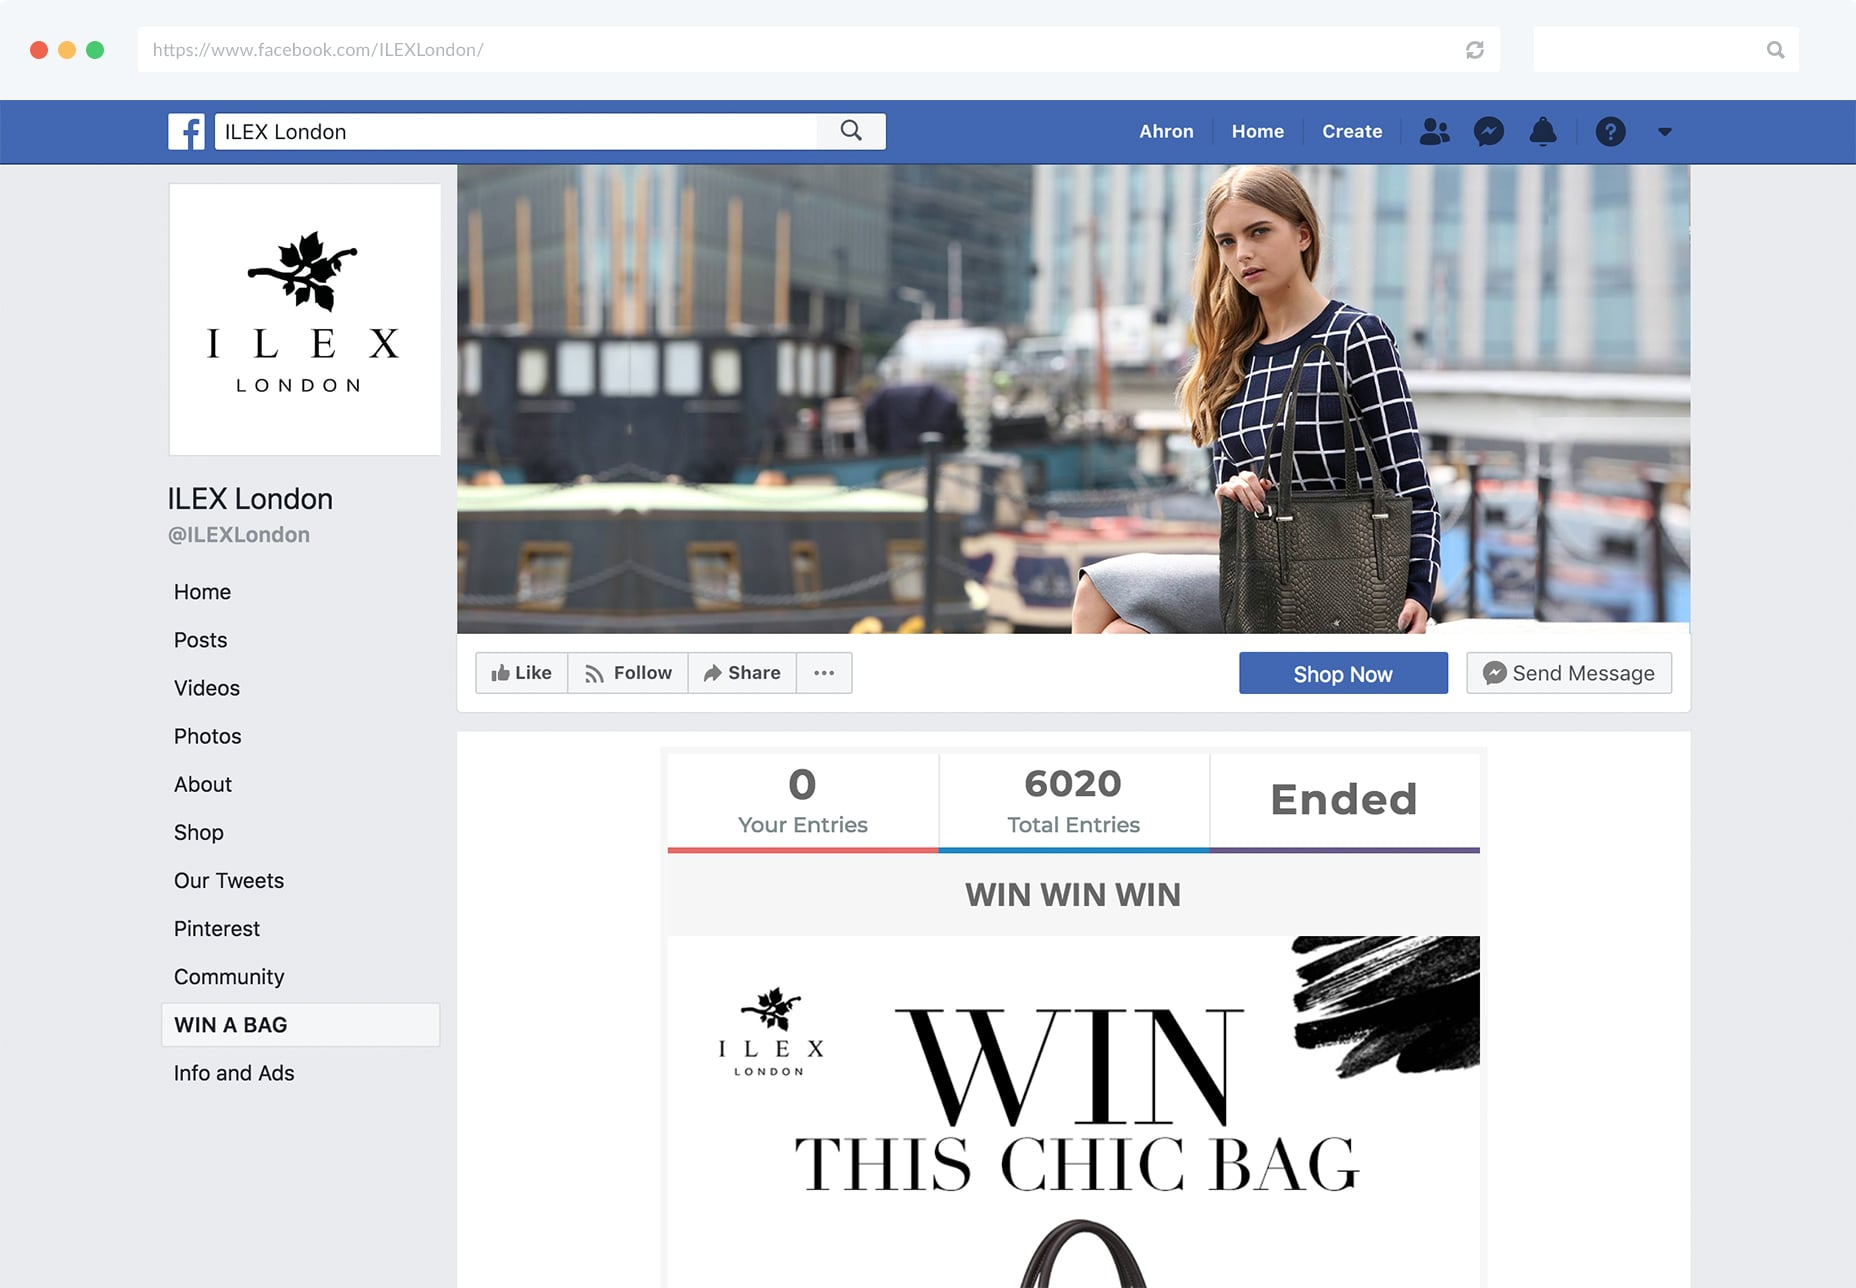 Gleam Competitions can be run inside a Facebook tab